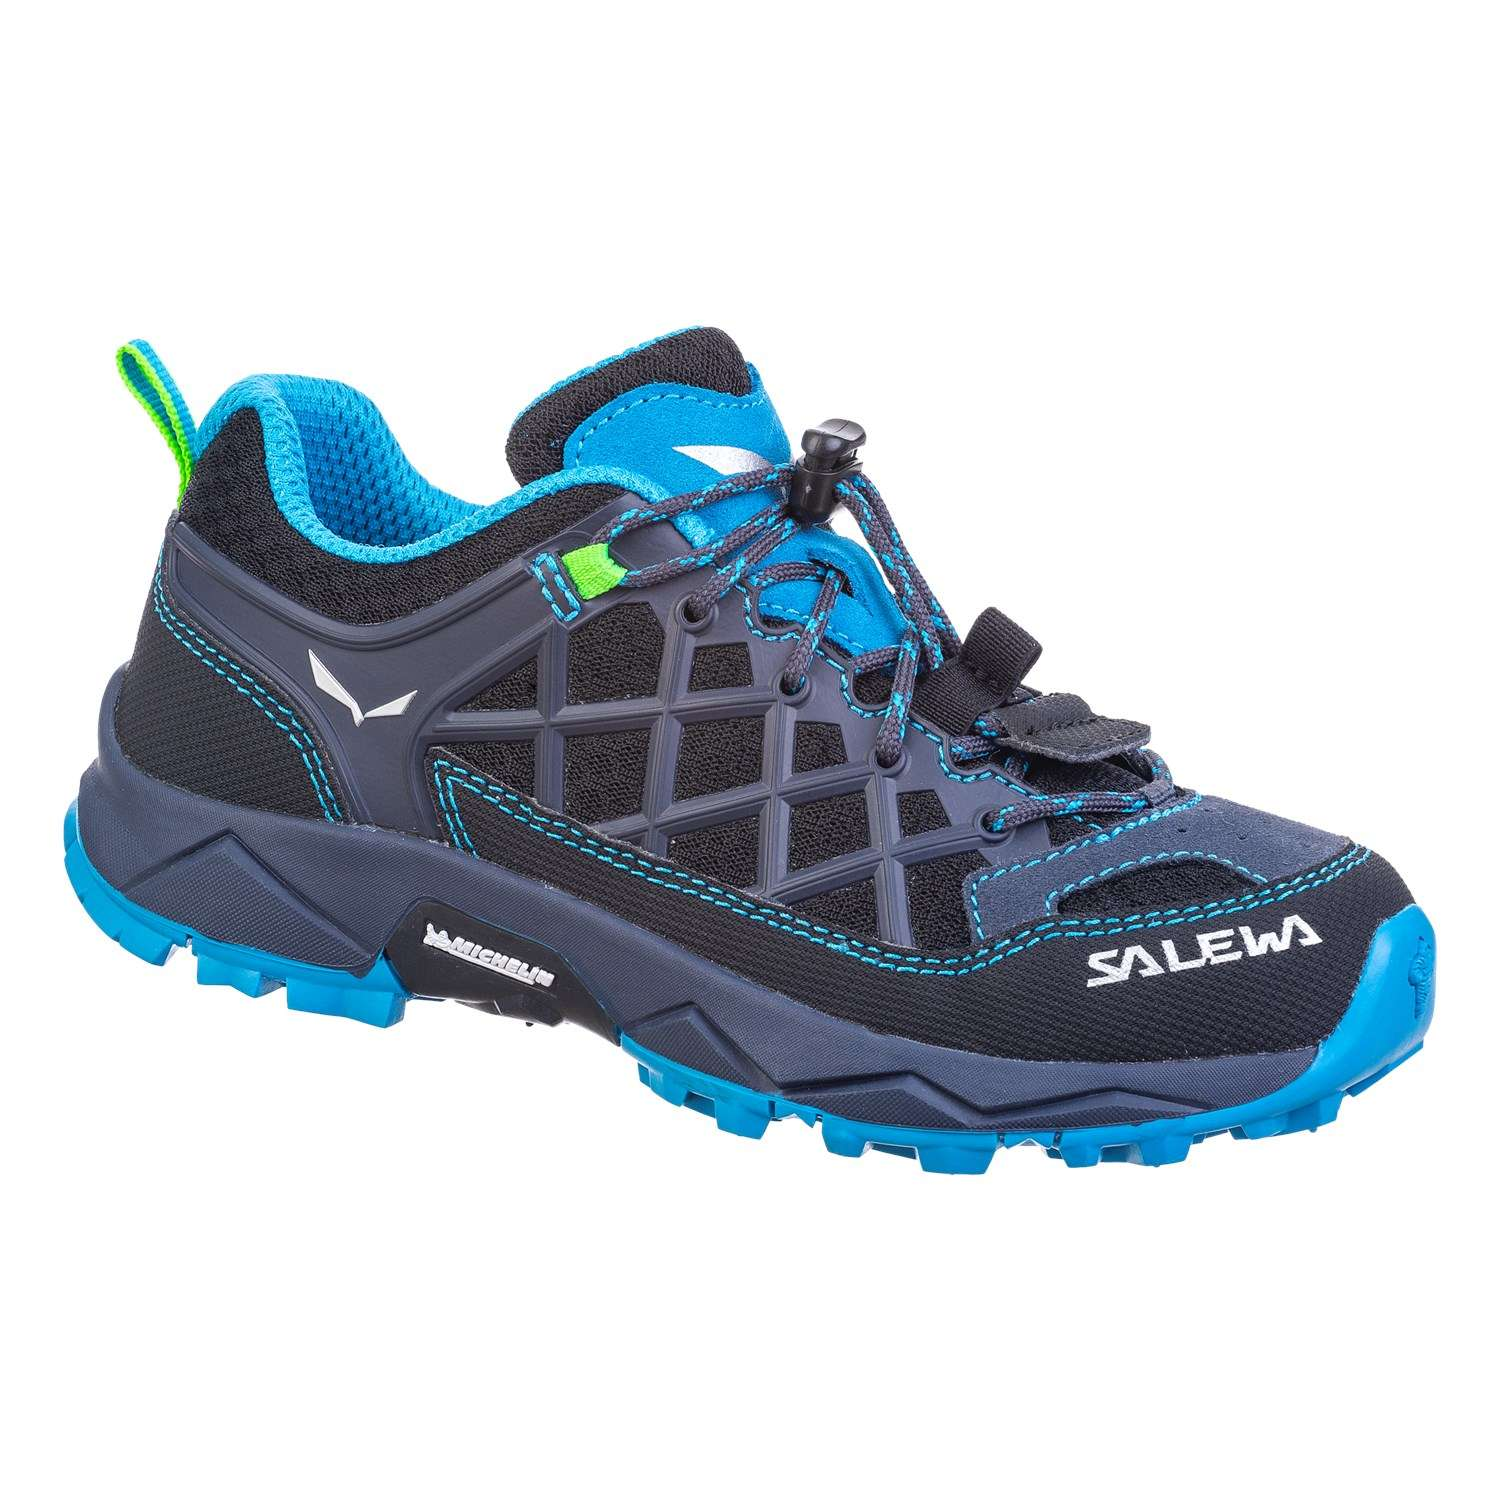 Calzini Unisex Adulto SALEWA Ultra Trainer